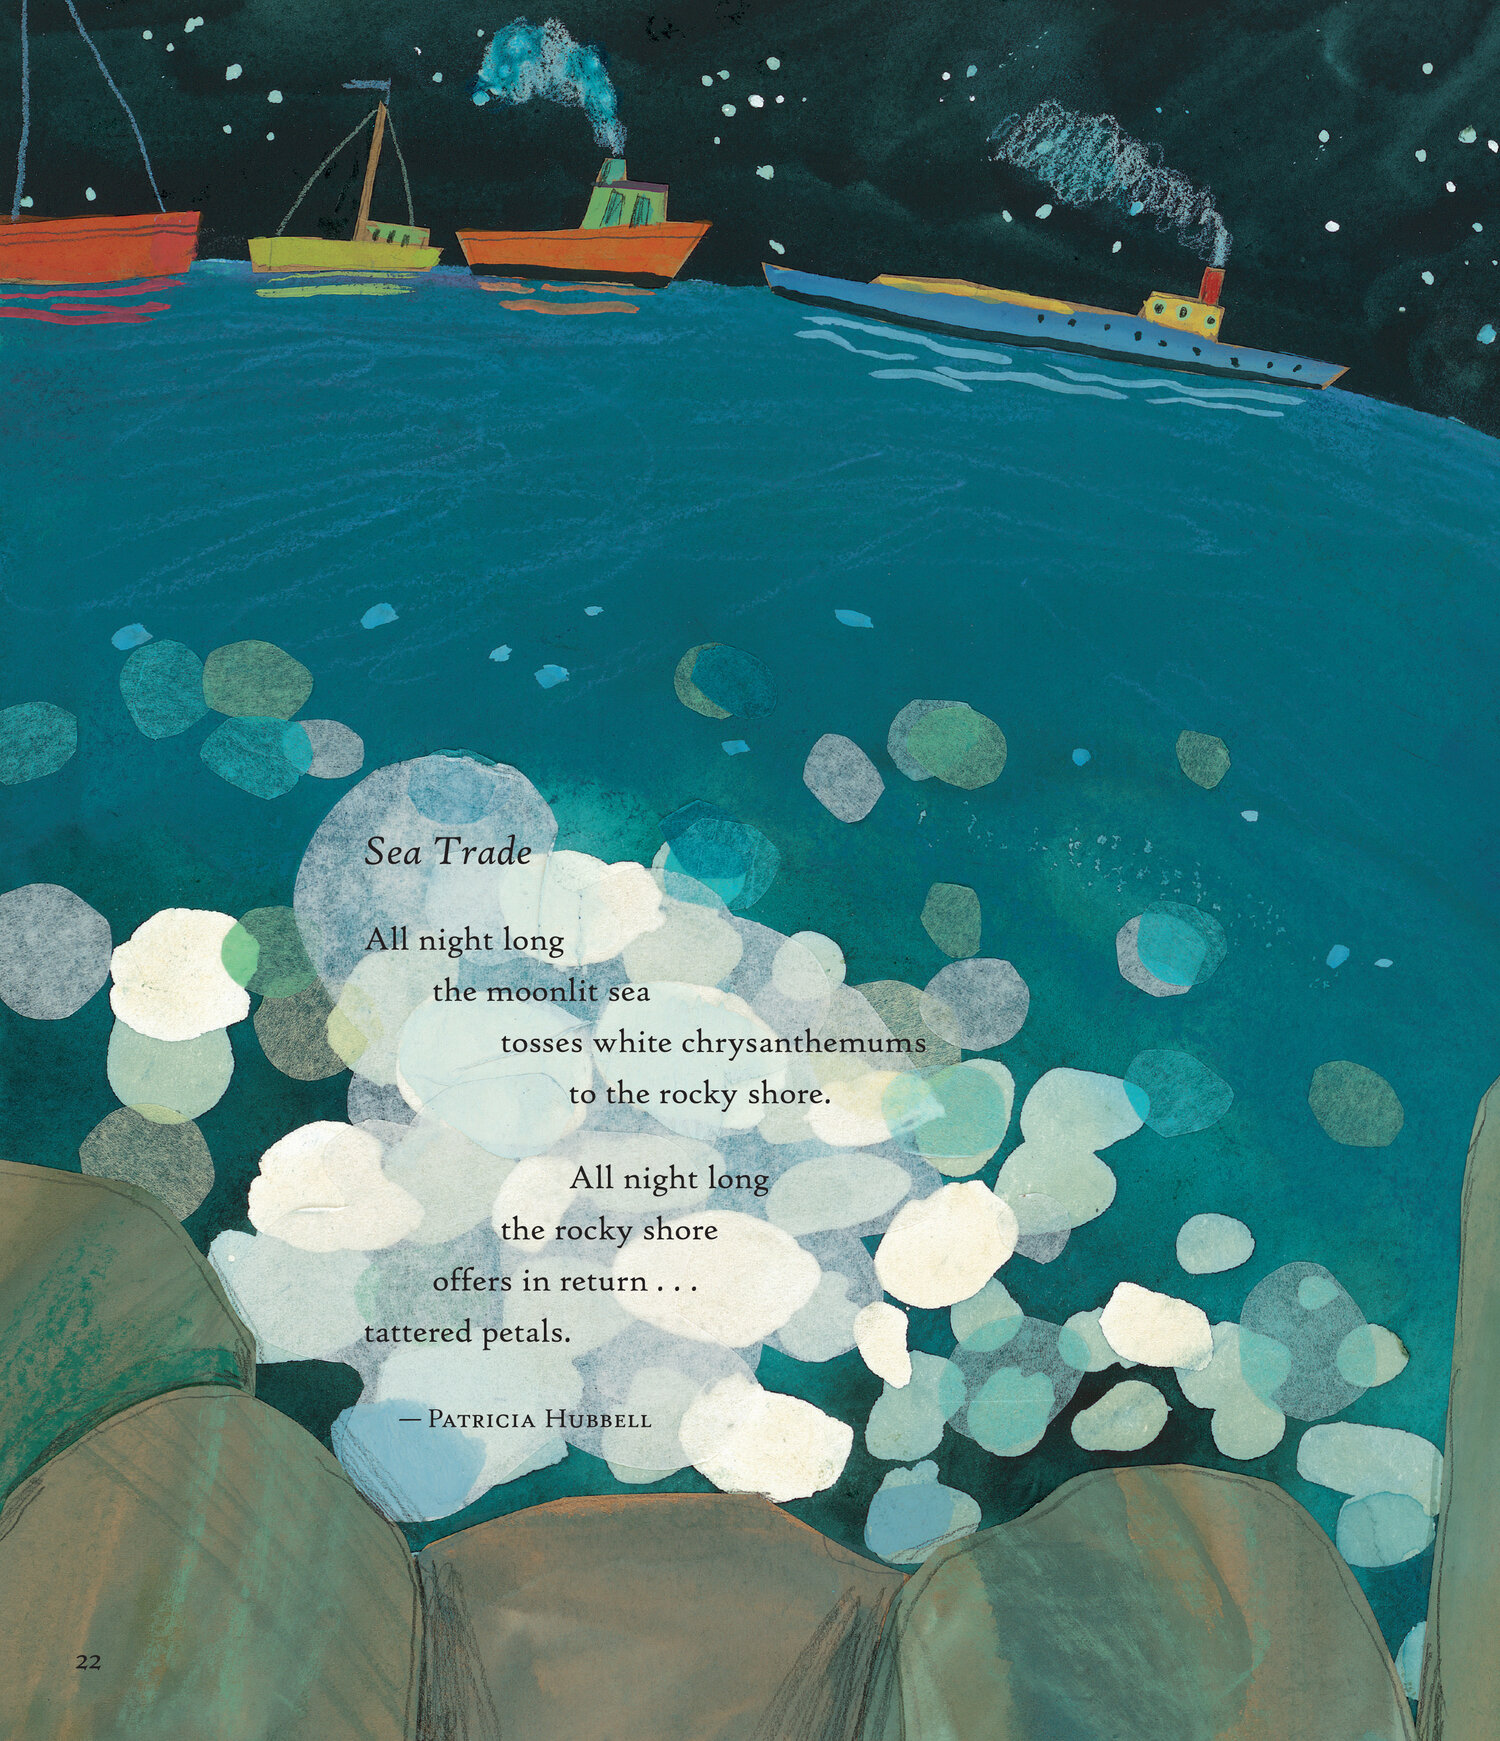 """Poems from Firefly July: A Year of Very Short Poems. Compilation Copyright 2014 by Paul B. Janeczko. Illustrations Copyright 2014 by Melissa Sweet. Reproduced by permission of the publisher, Candlewick Press, Somerville, MA. """"Sea Trade"""". Copyright 2014 Patricia Hubbell. Used by permission of Marian Reiner for the author."""